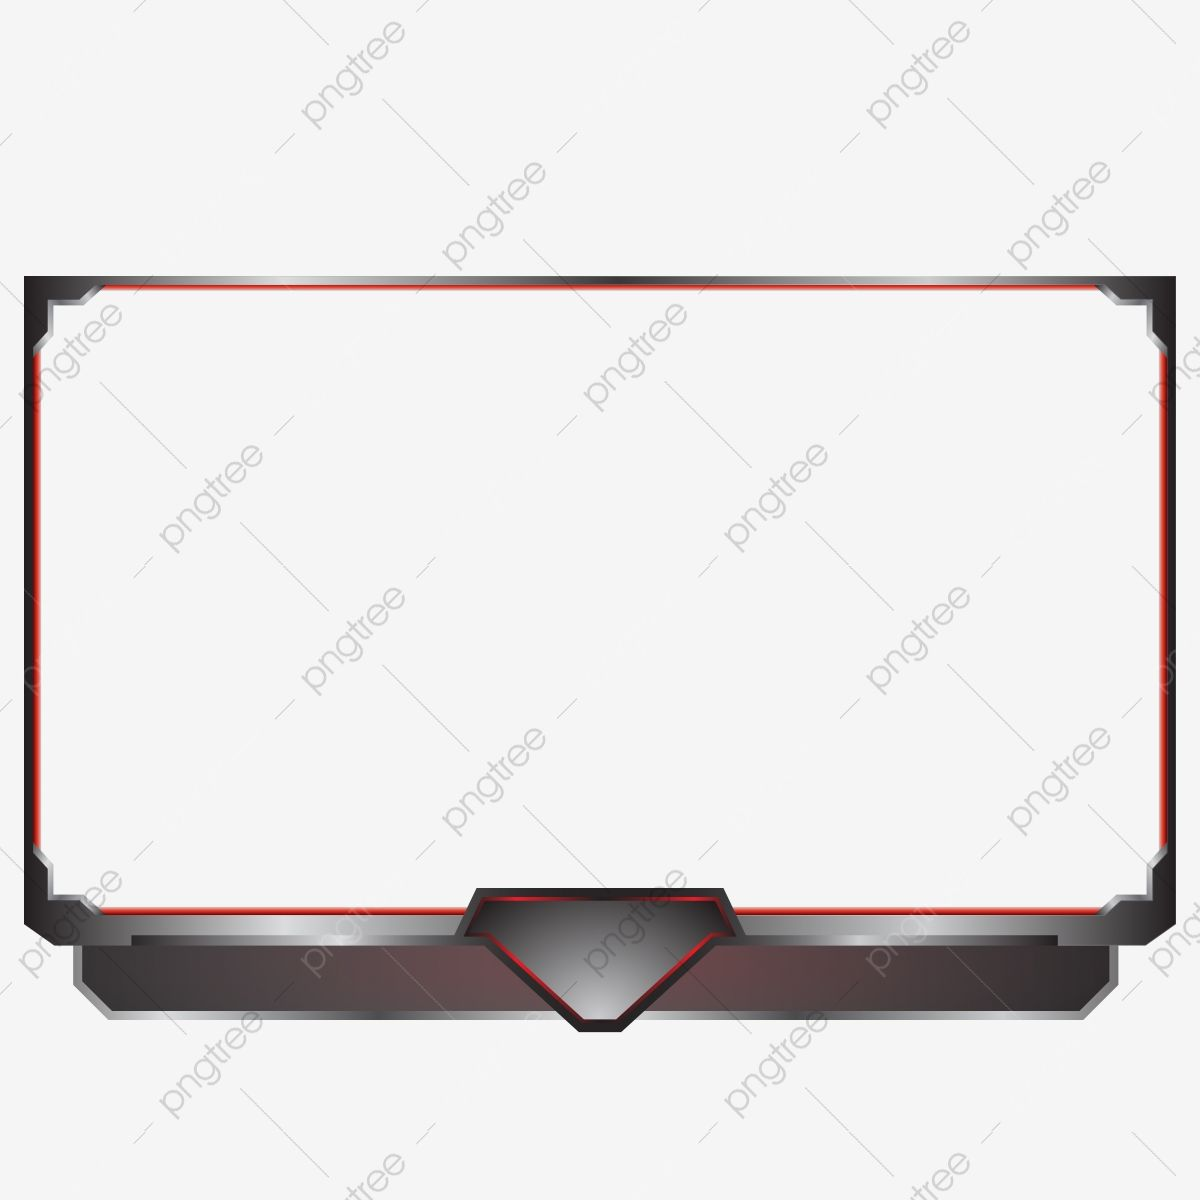 Streaming Overlay For Live Game Red Dark Metal Live Vector Stream Png And Vector With Transparent Background For Free Download Overlays Transparent Overlays Graphic Card